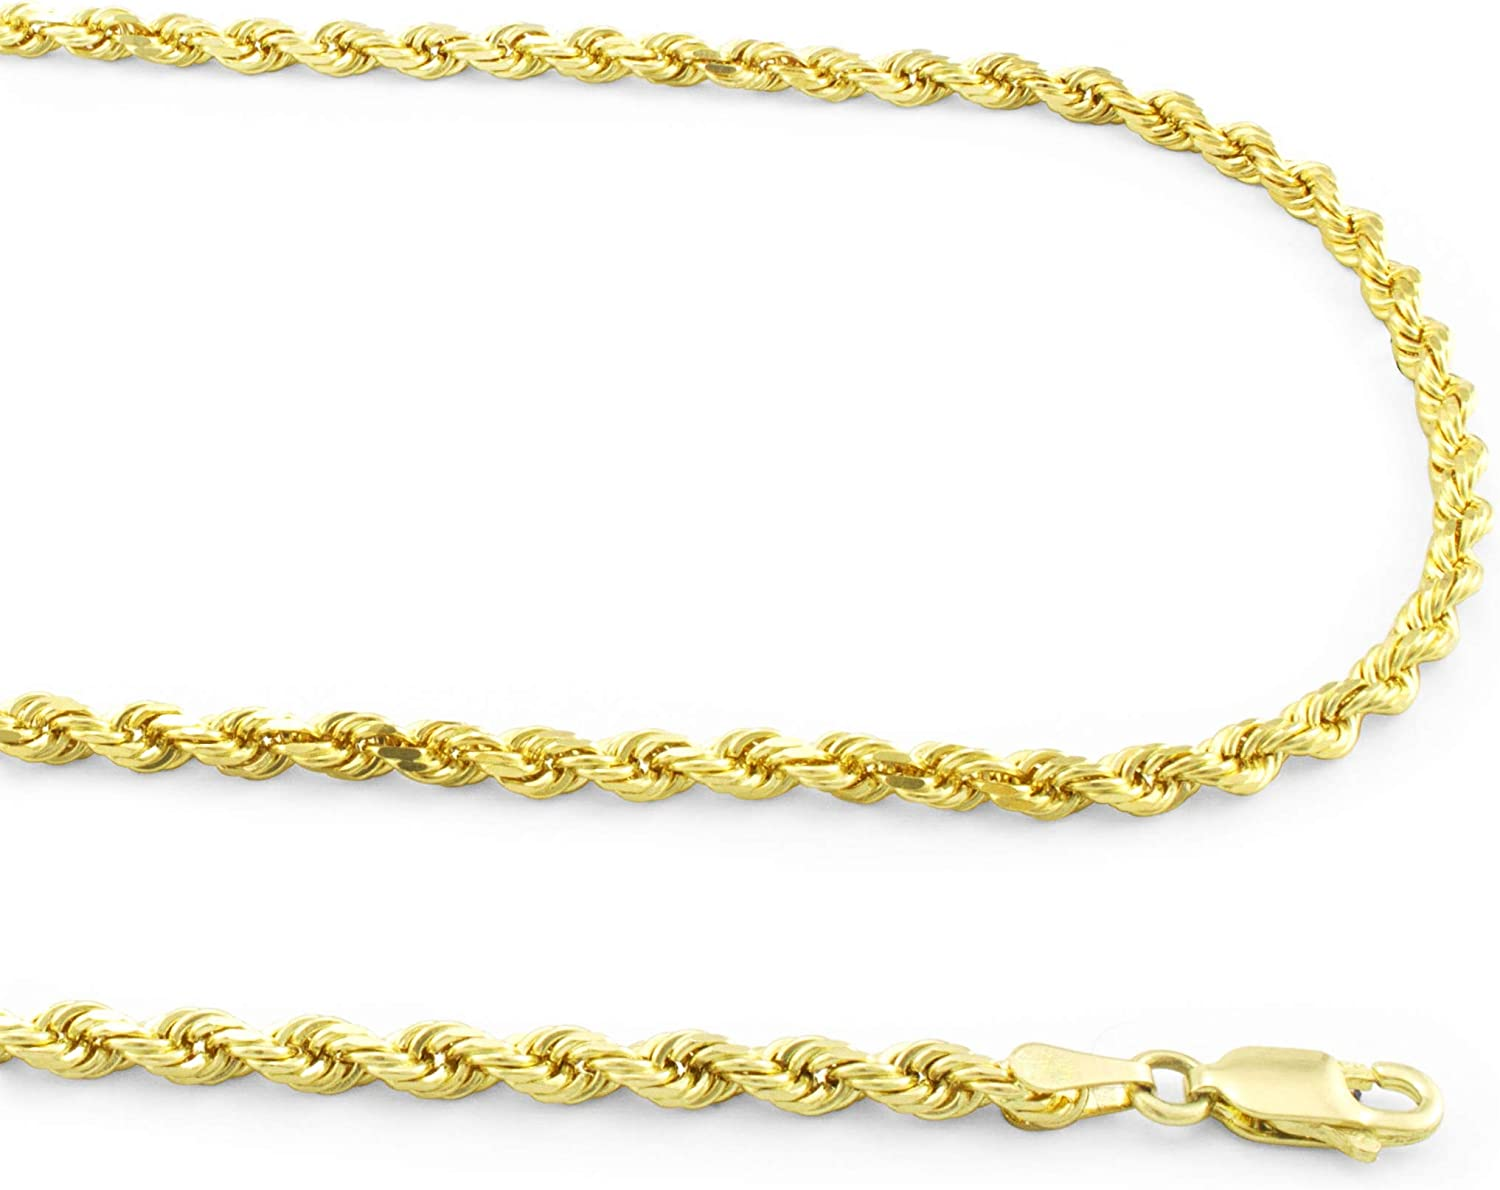 Nuragold 14k Yellow Gold 3mm Rope Chain Diamond Cut Pendant Necklace, Mens Womens Lobster Lock 18